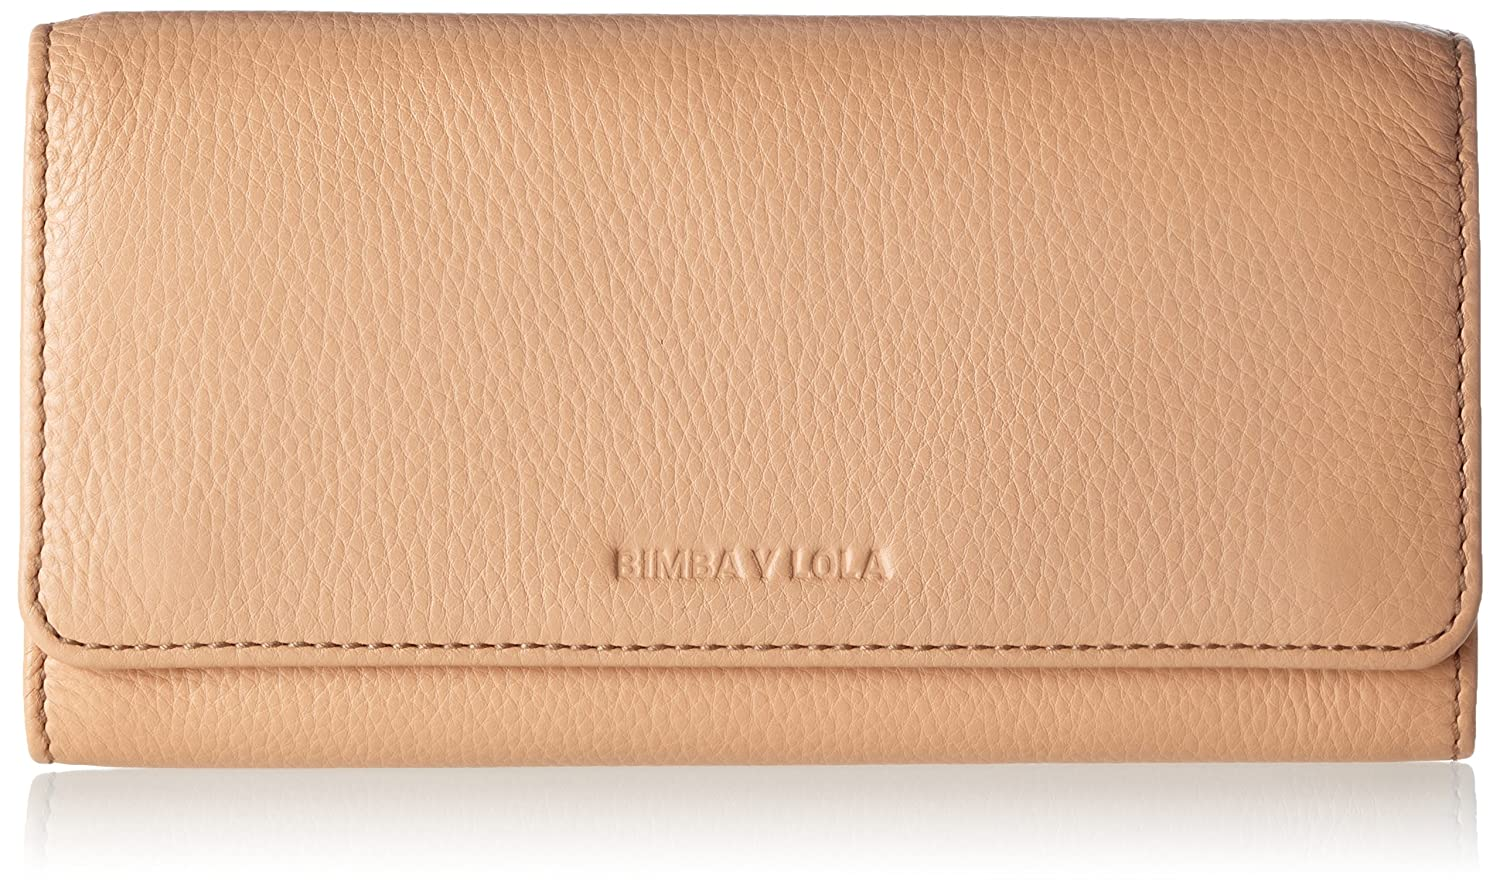 Bimba & Lola - Billetera para mujer, color salmón: Amazon.es ...